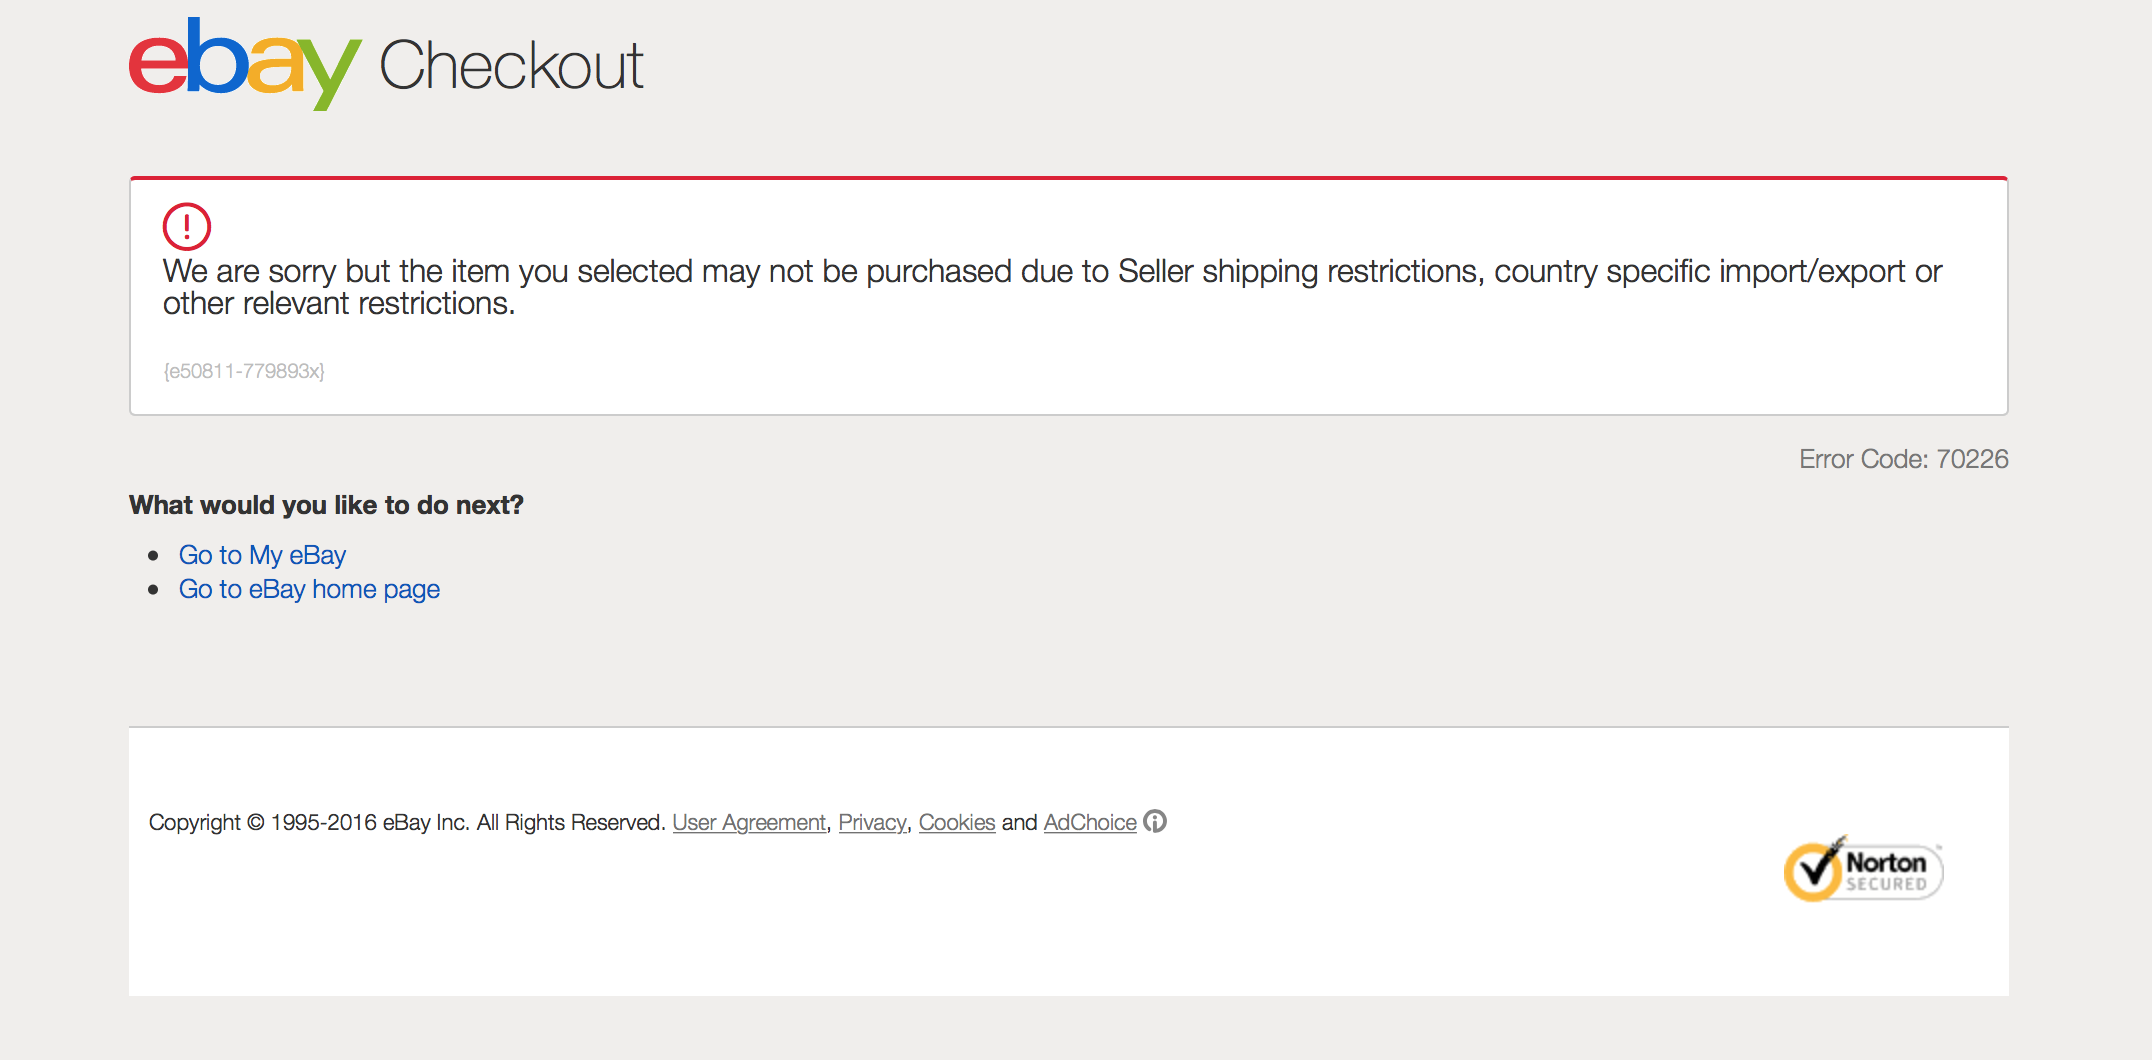 Seller Shipping Restrictions Country Specific Imp The Ebay Community